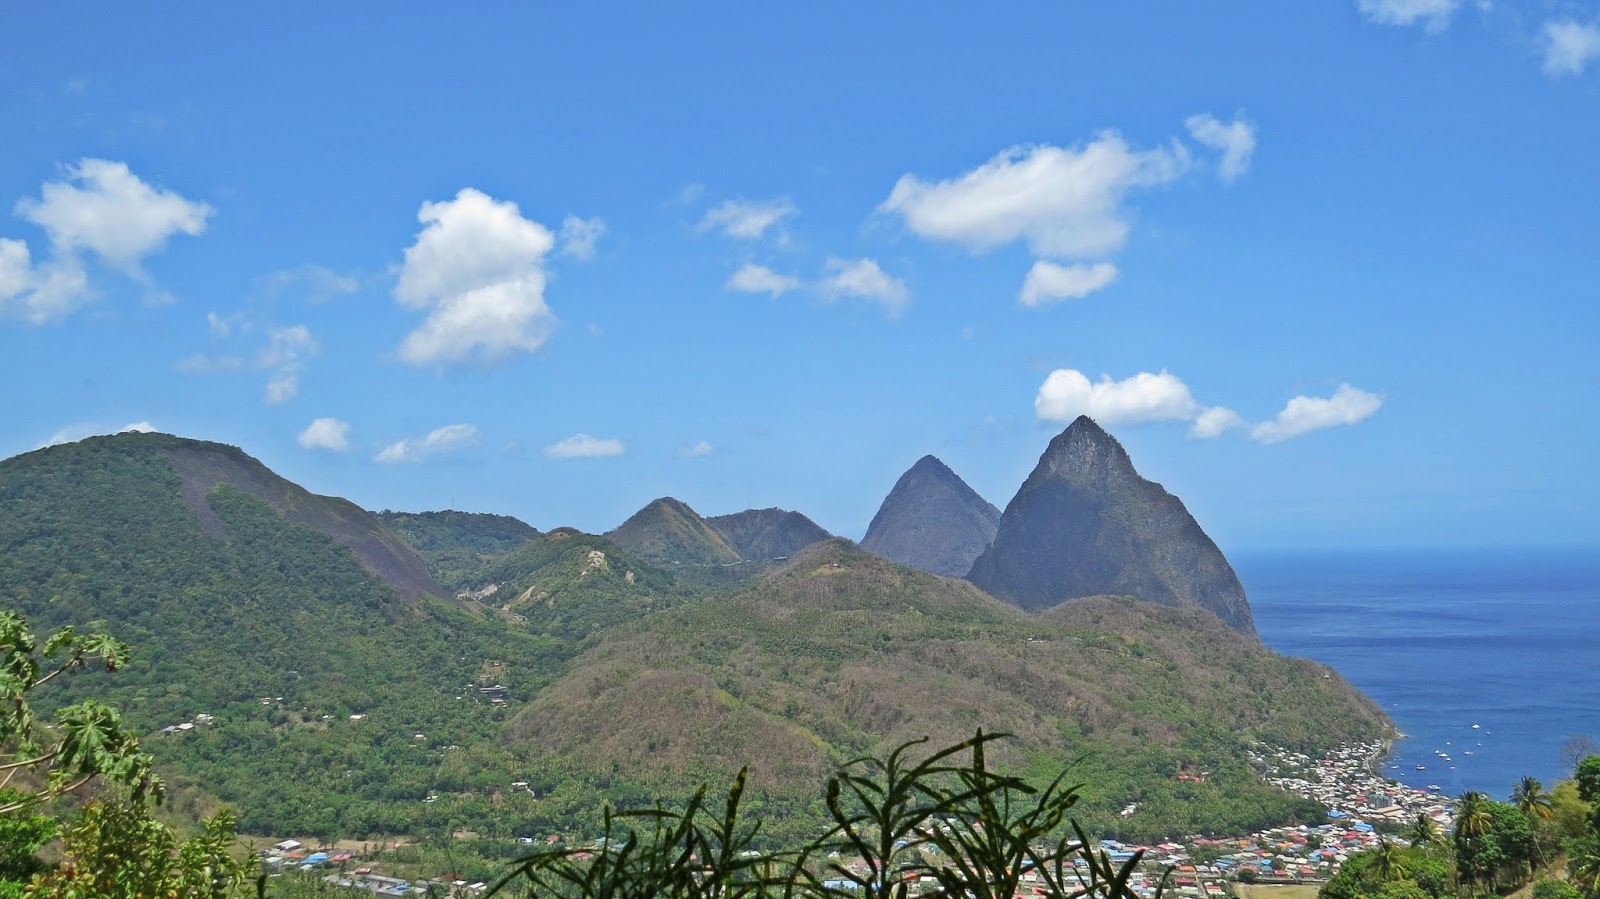 The volcano is in the very left of the picture - the dome with black rocks running down the right side.